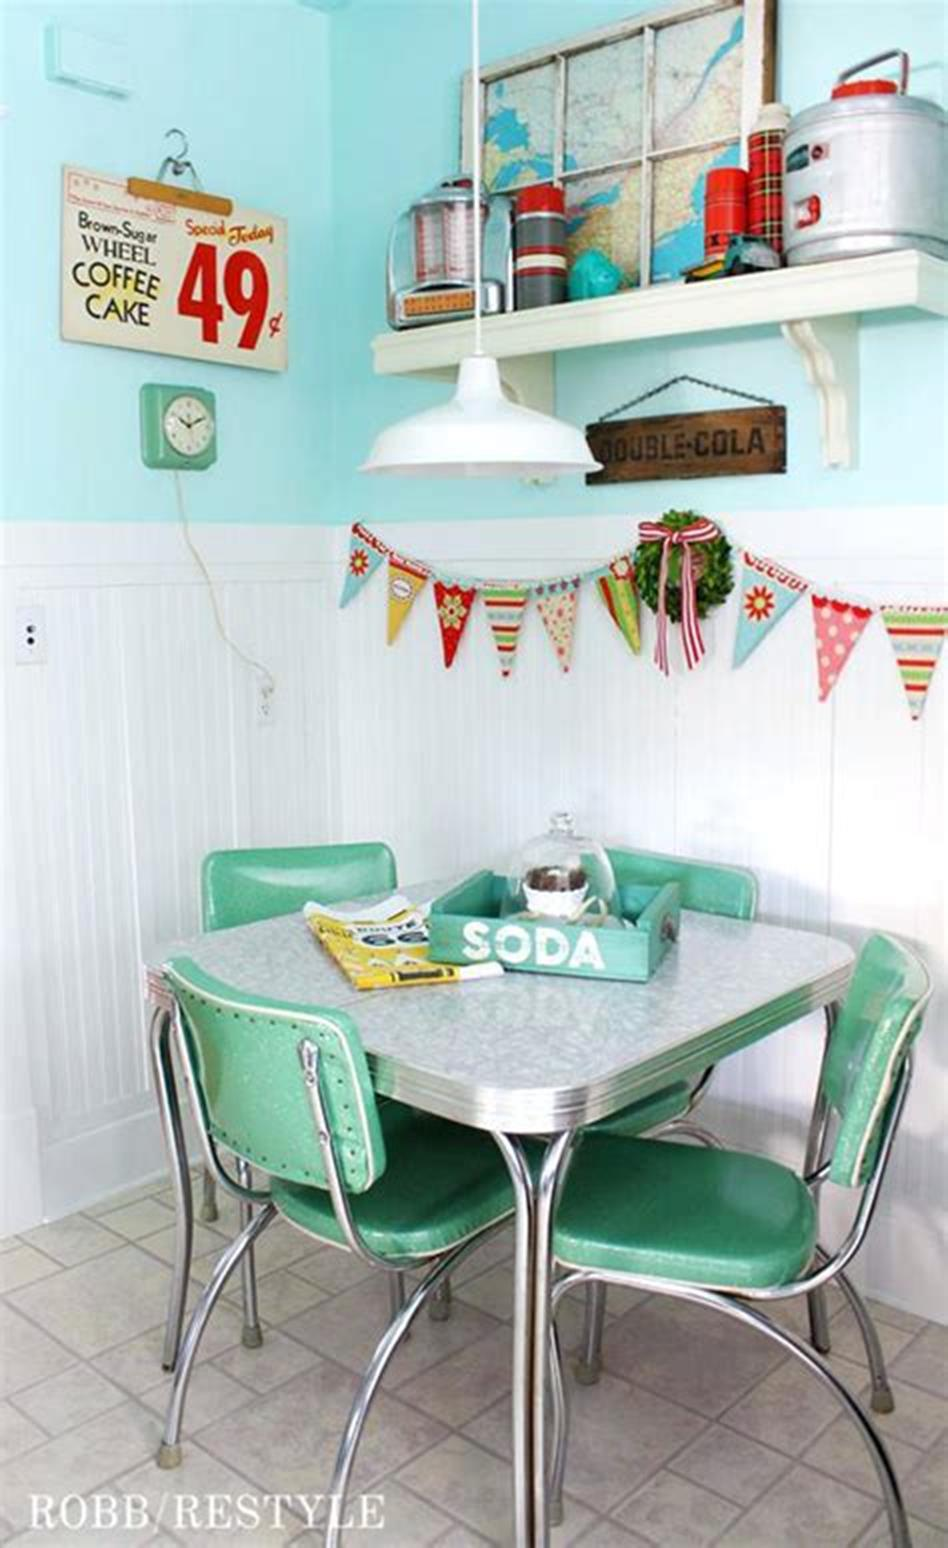 42 DIY Beautiful Vintage Spring Decorations Ideas You Will Love 8